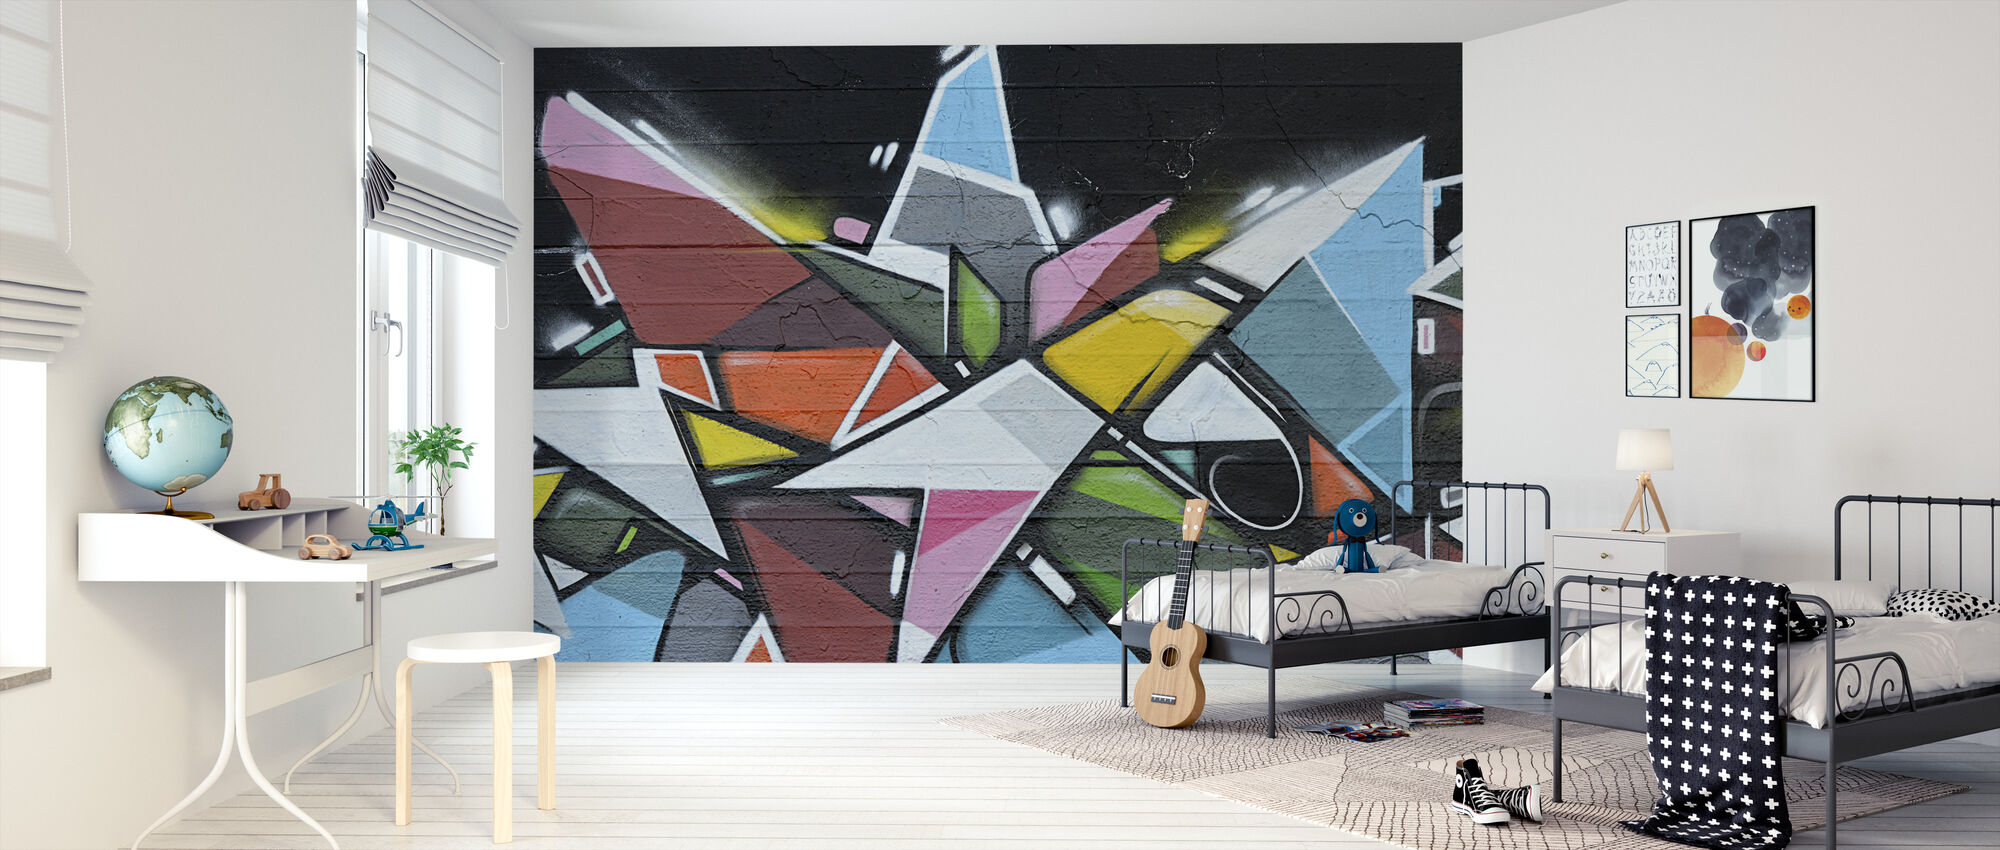 Geometric Graffiti - Wallpaper - Kids Room